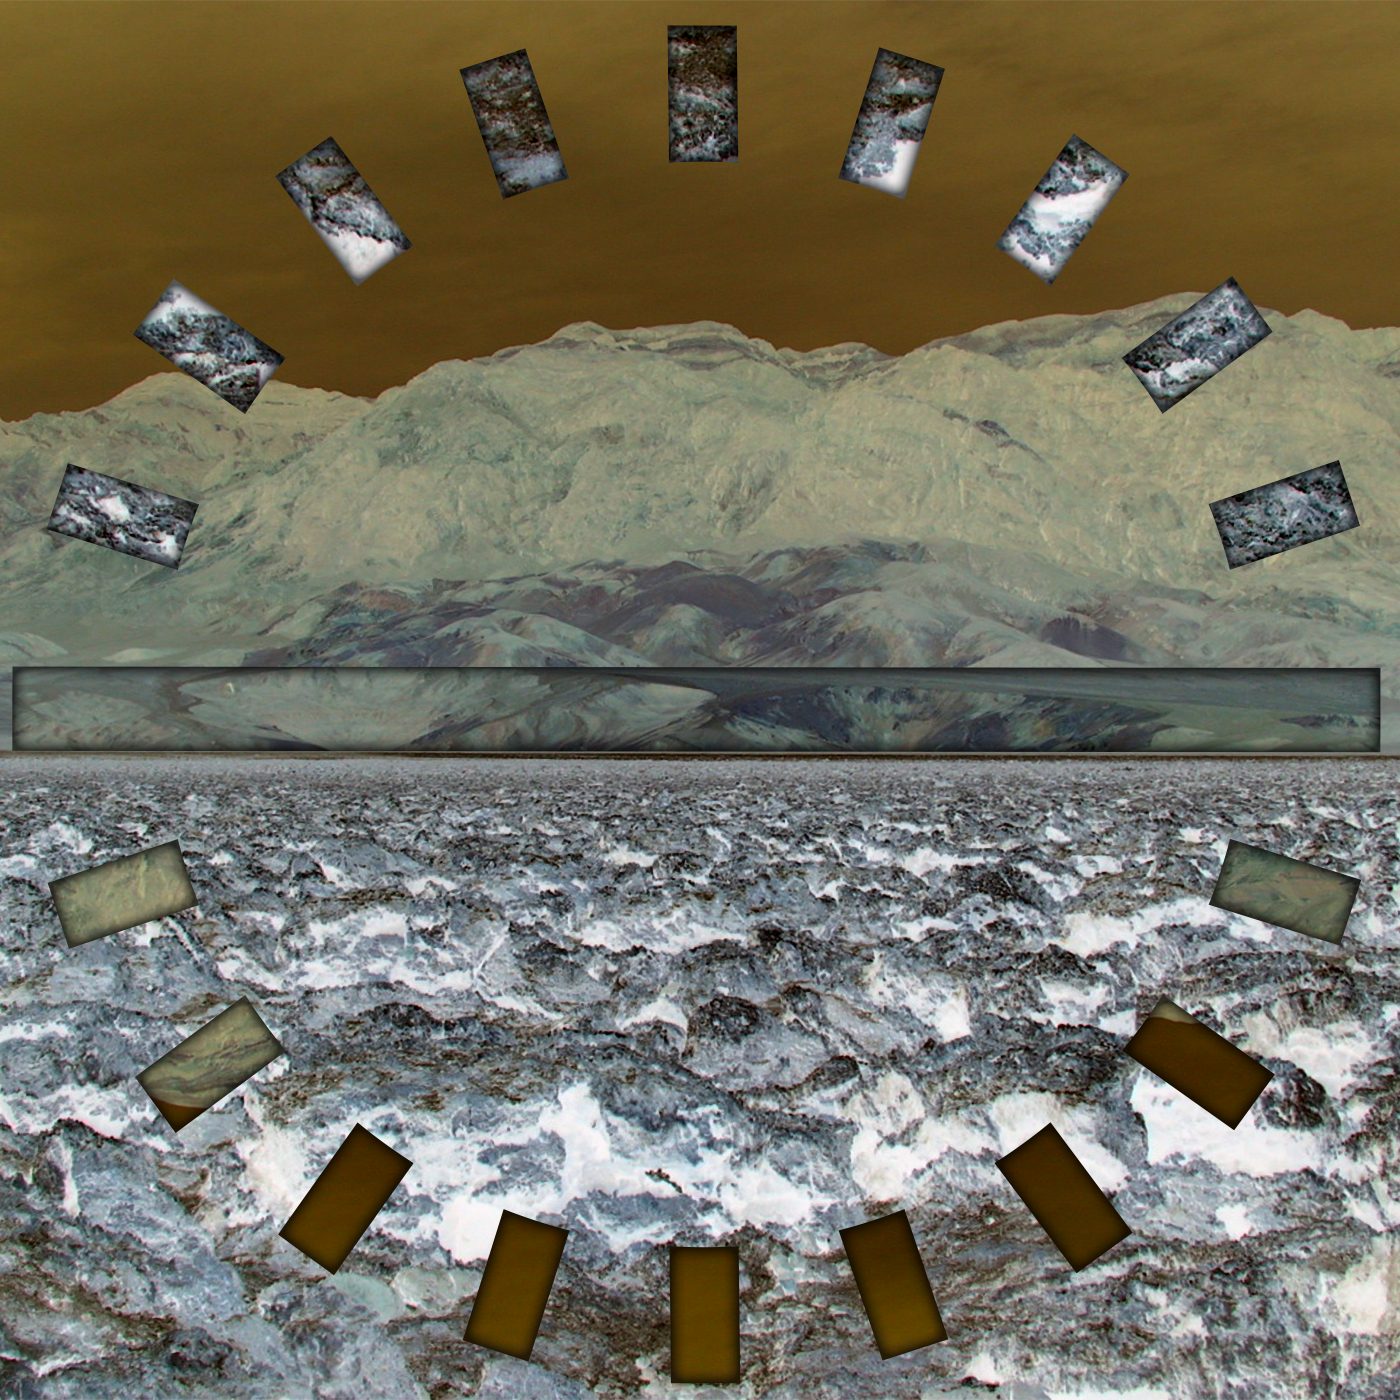 A series of bars arranged in a circle, with a single large horizontal bar through it; a treated photograph of a desolate landscape in the background.